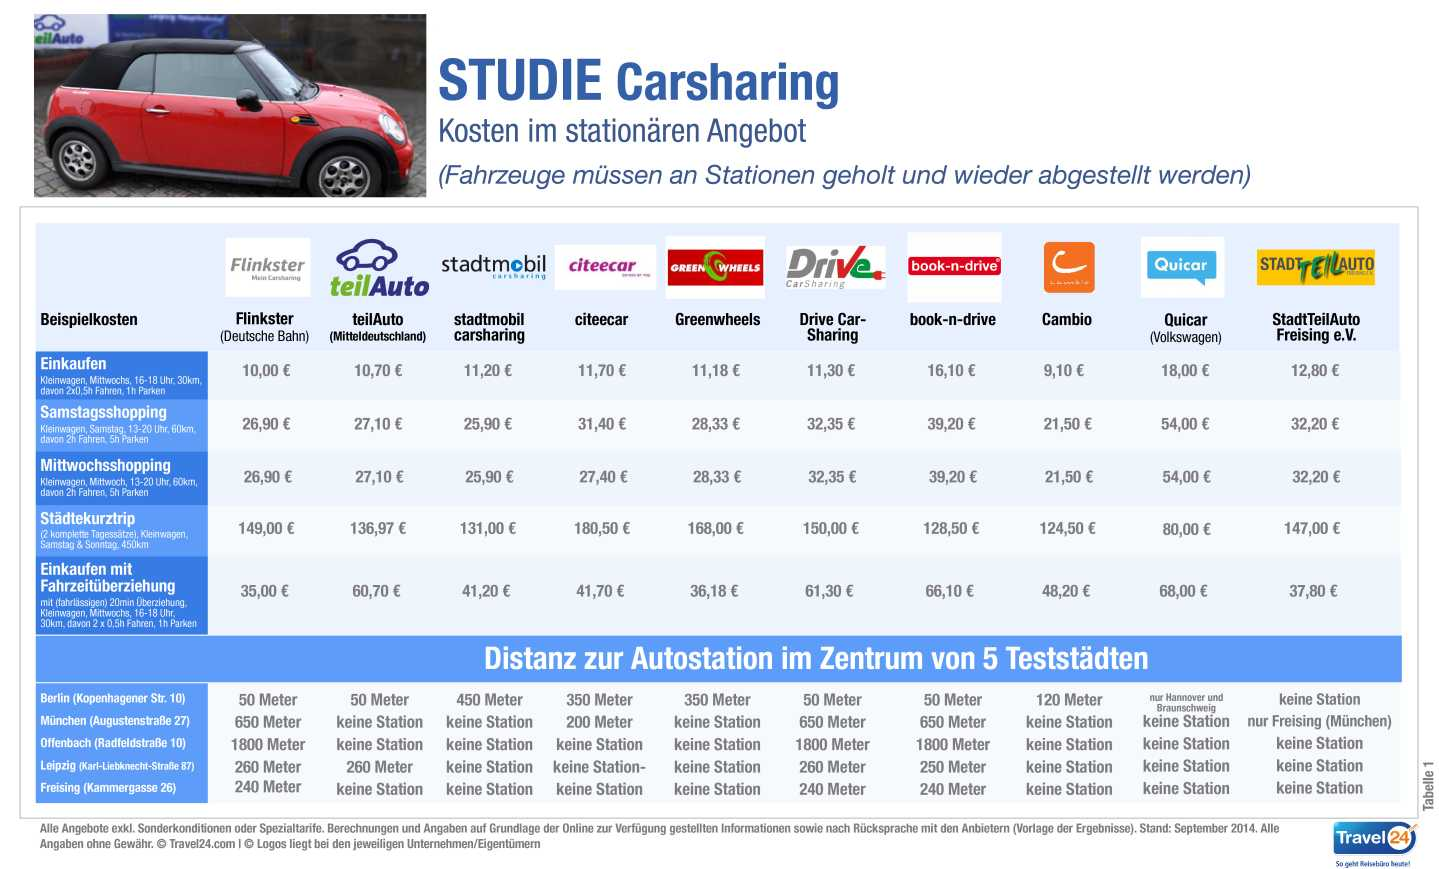 trend Carsharing_Studie_Travel24_com_Tabelle-01_Stationaeres_Angebot